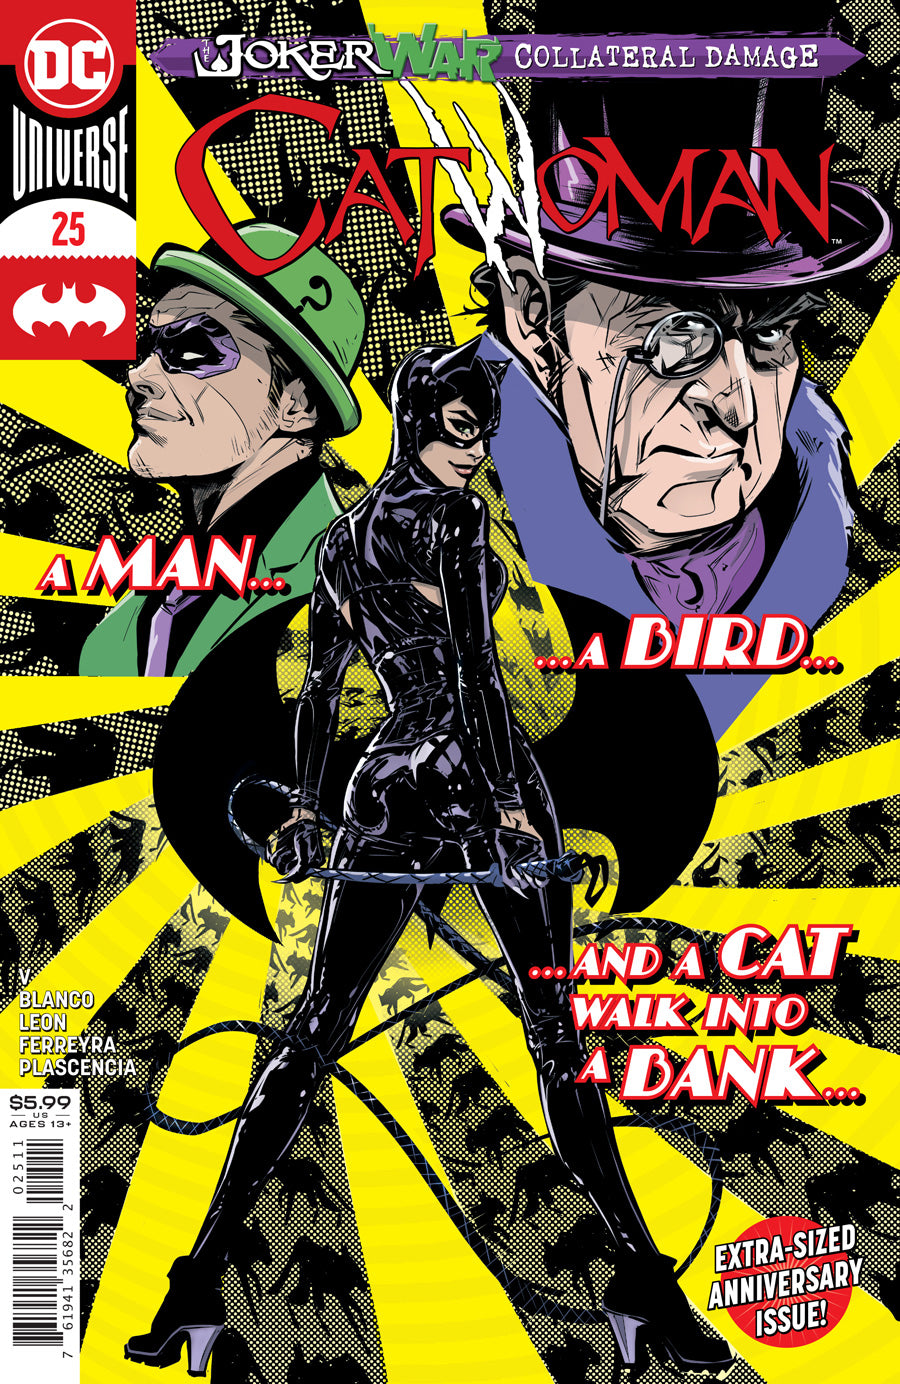 CATWOMAN #25 COVER A JOELLE JONES (JOKER WAR)